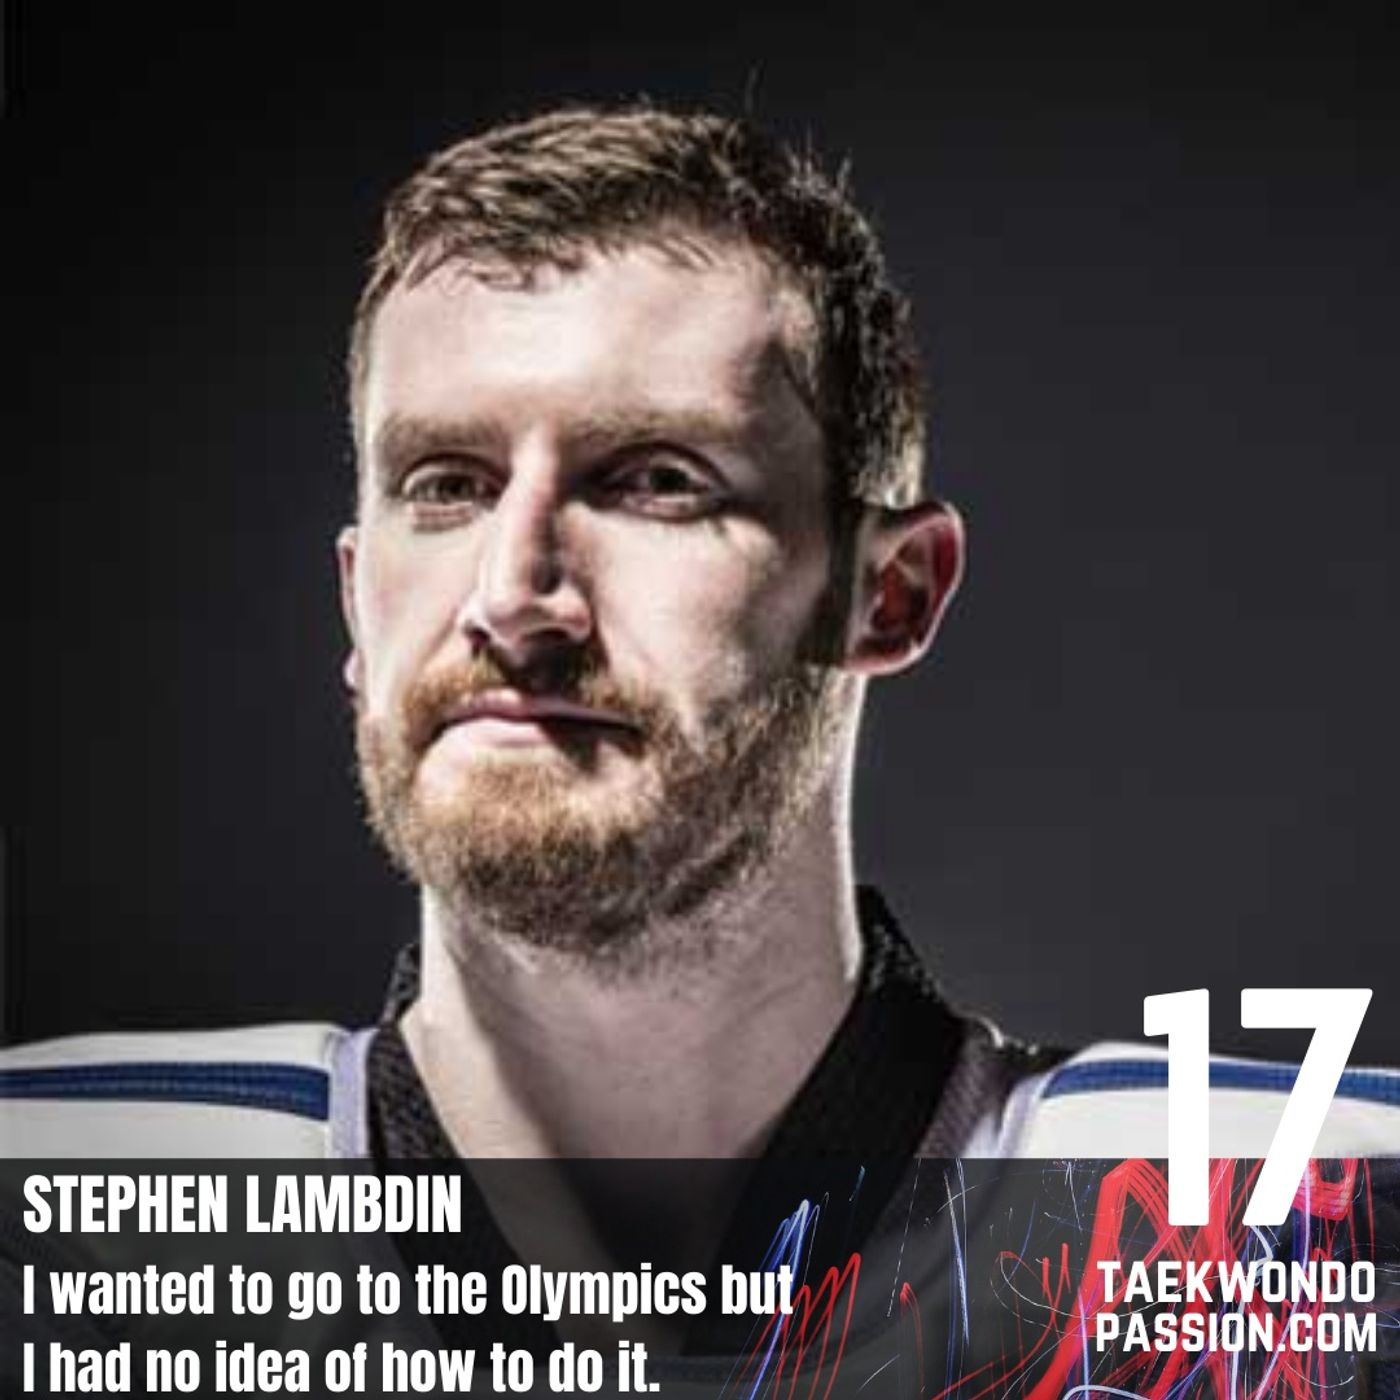 Stephen Lambdin: I wanted to go to the Olympics but I had no idea of how to do it